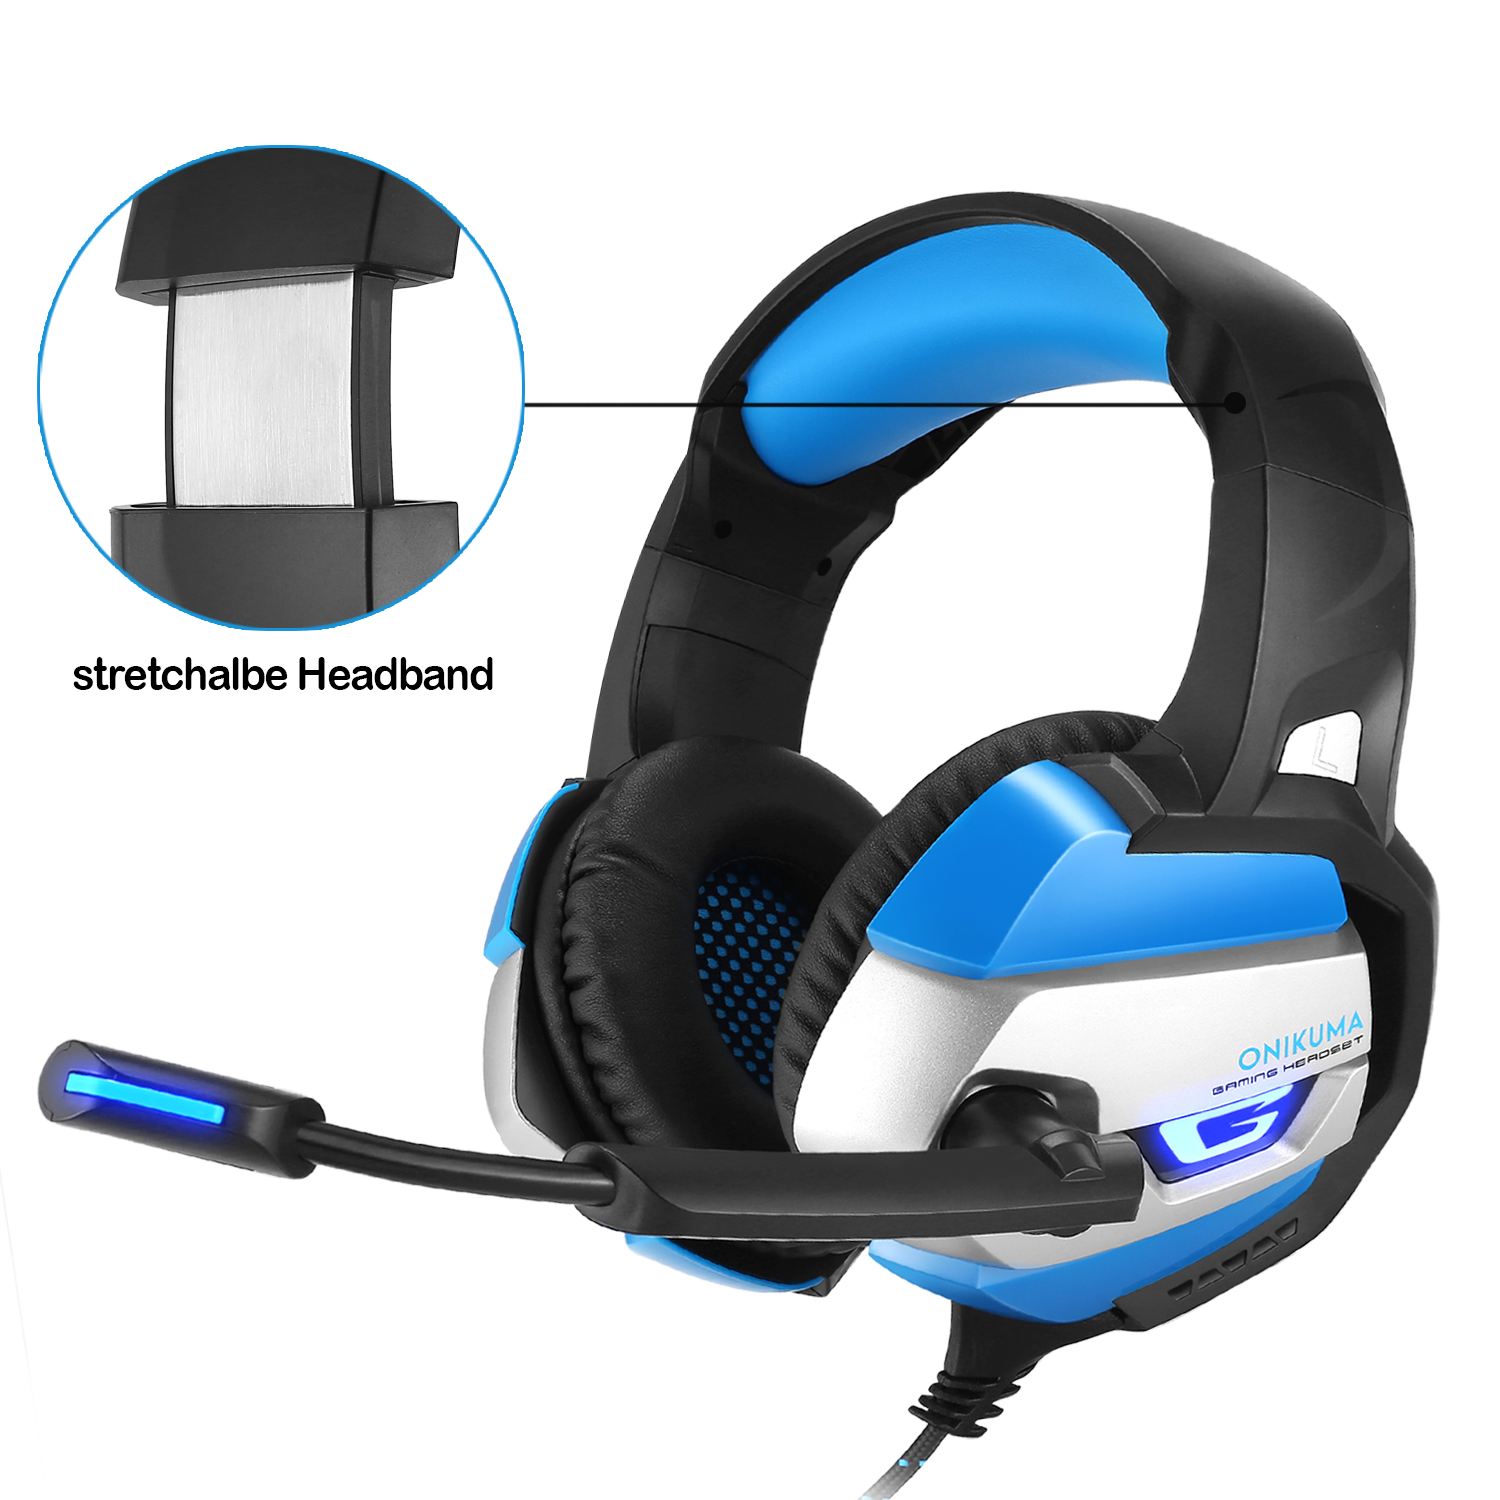 New K5 Deep Bass gaming headset PS4 gamer headphones casque audio earphones LED light with microphone for computer PC laptop 2016 new universal adjustable headphones earphones with volume control for mp3 mp4 computer gamer supper bass earphone